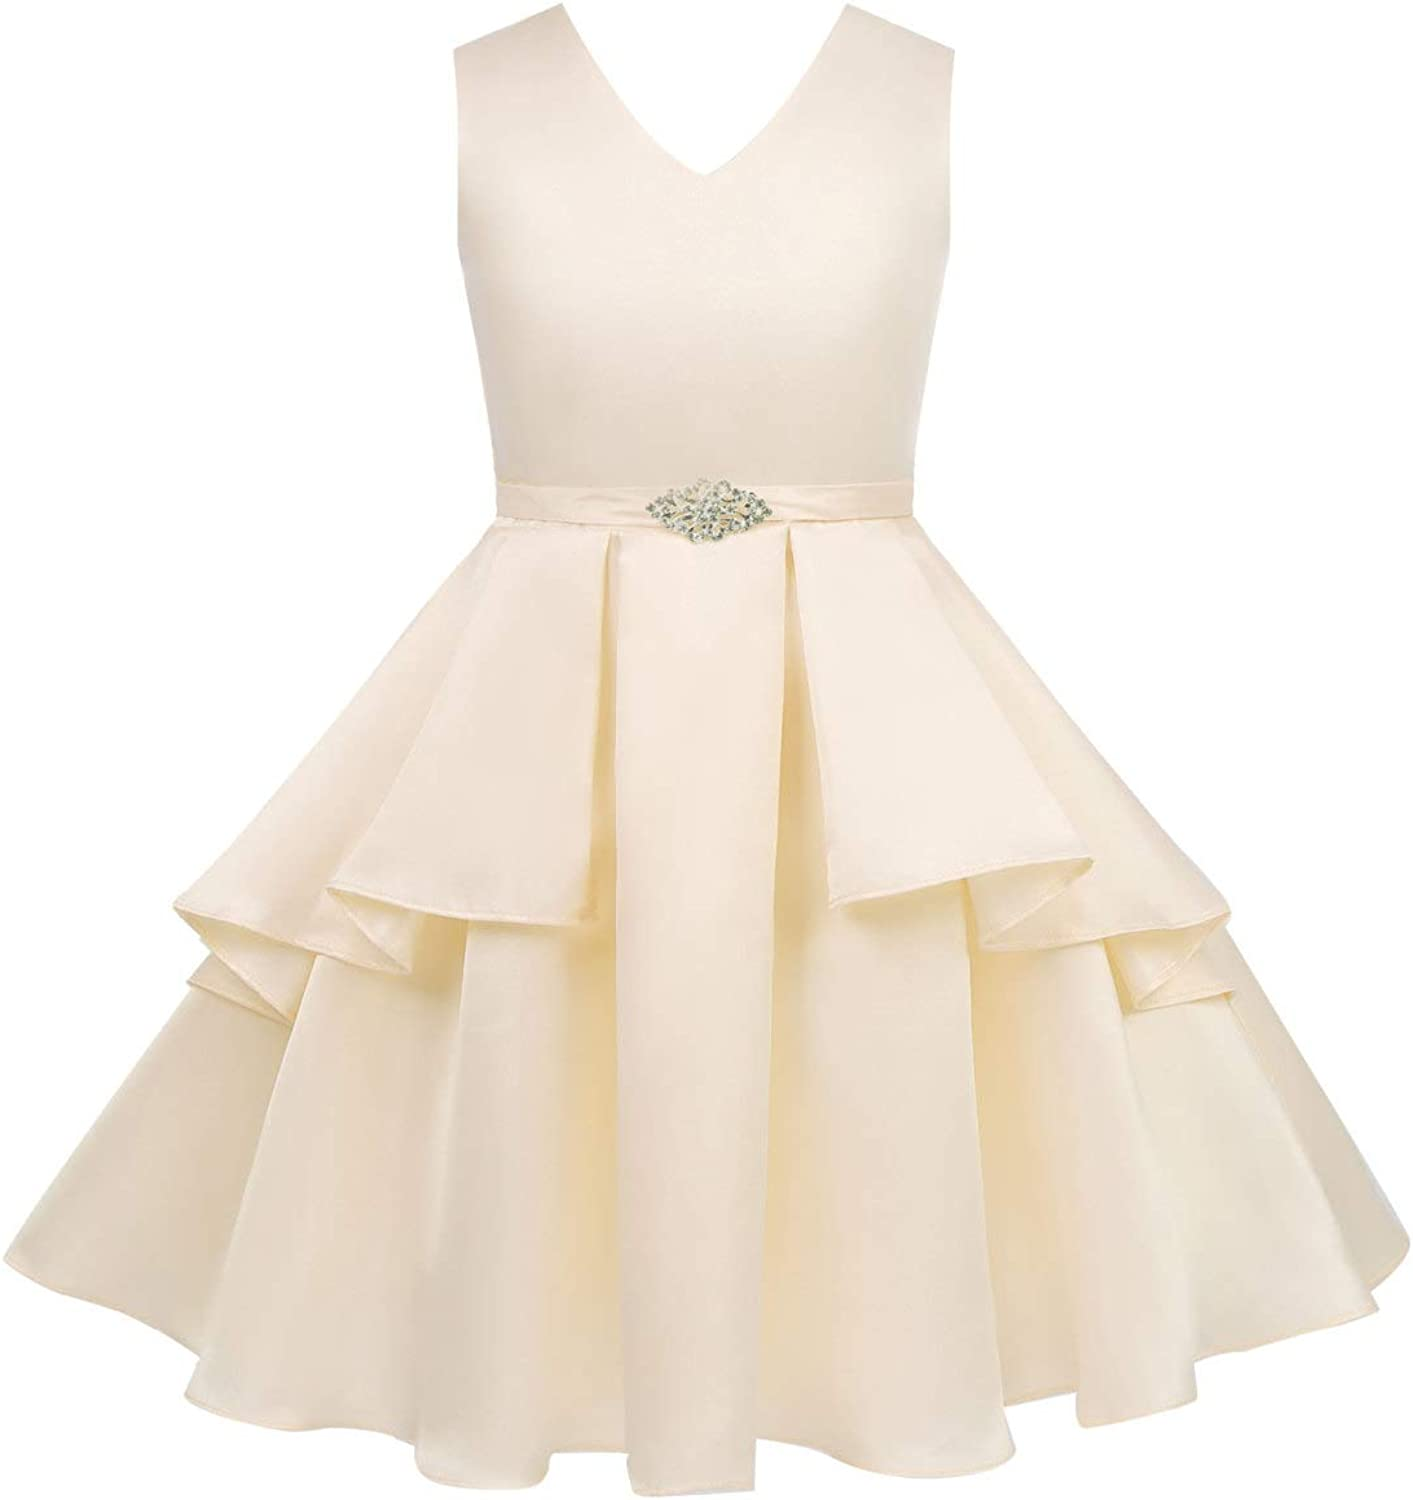 YOOJIA Kids Girls Sleeveless V Neck Satin Special Occasions Dress A-Line Sundress Elegant Evening Party Prom Gown